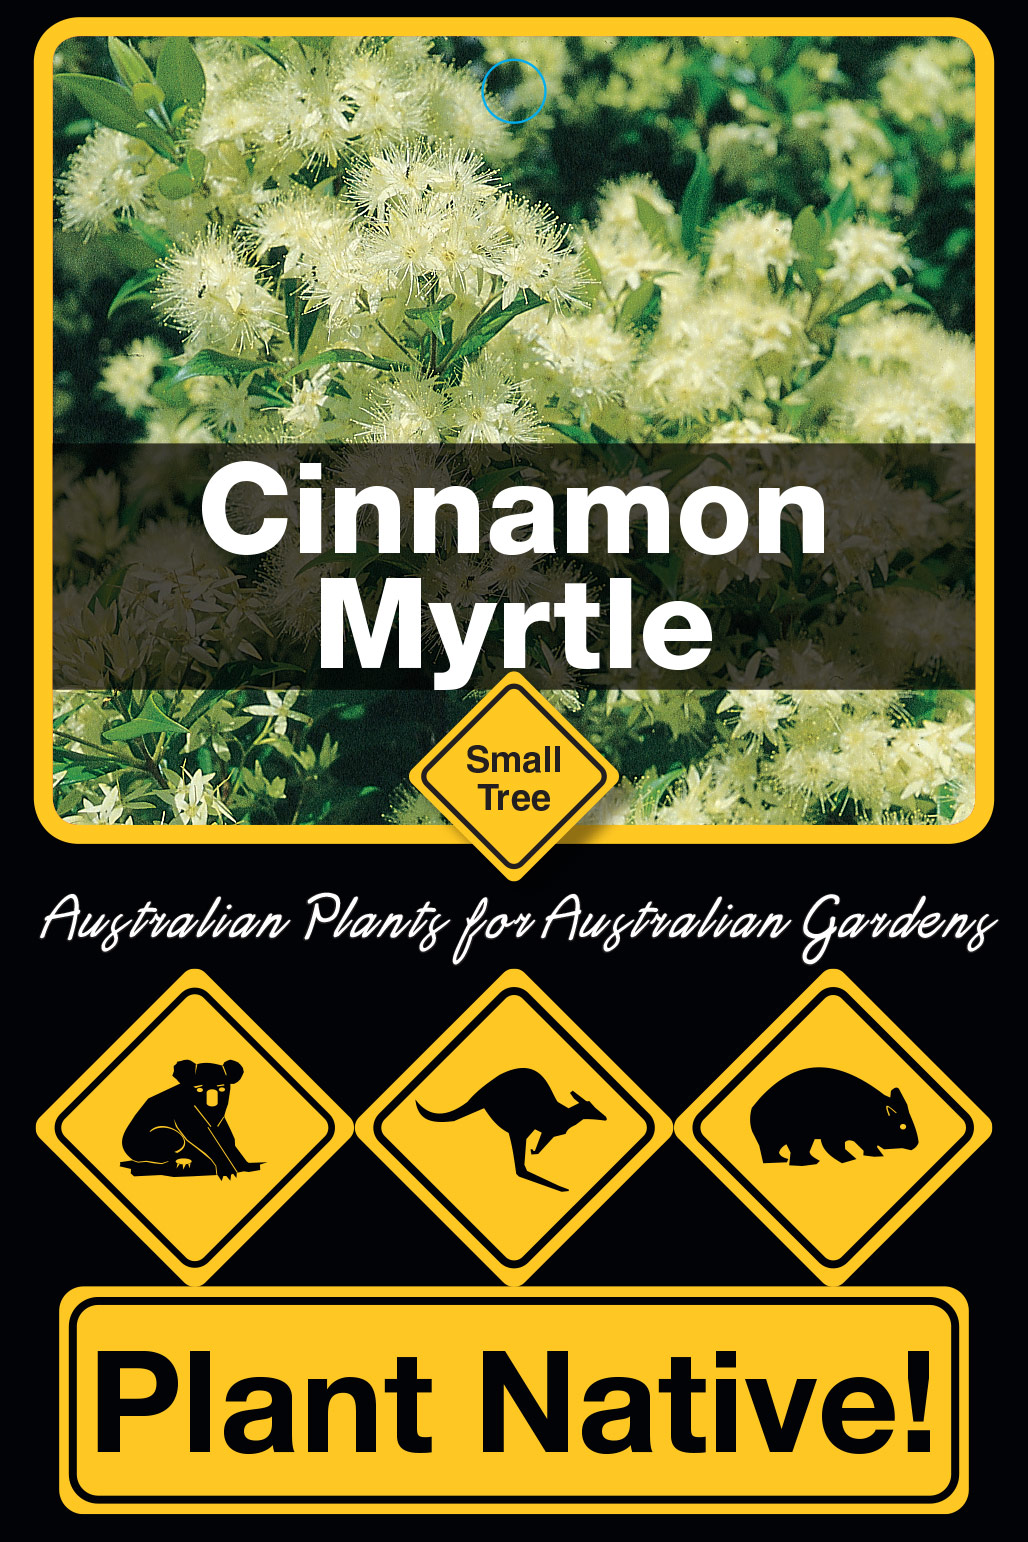 Cinnamon Myrtle - Plant Native!